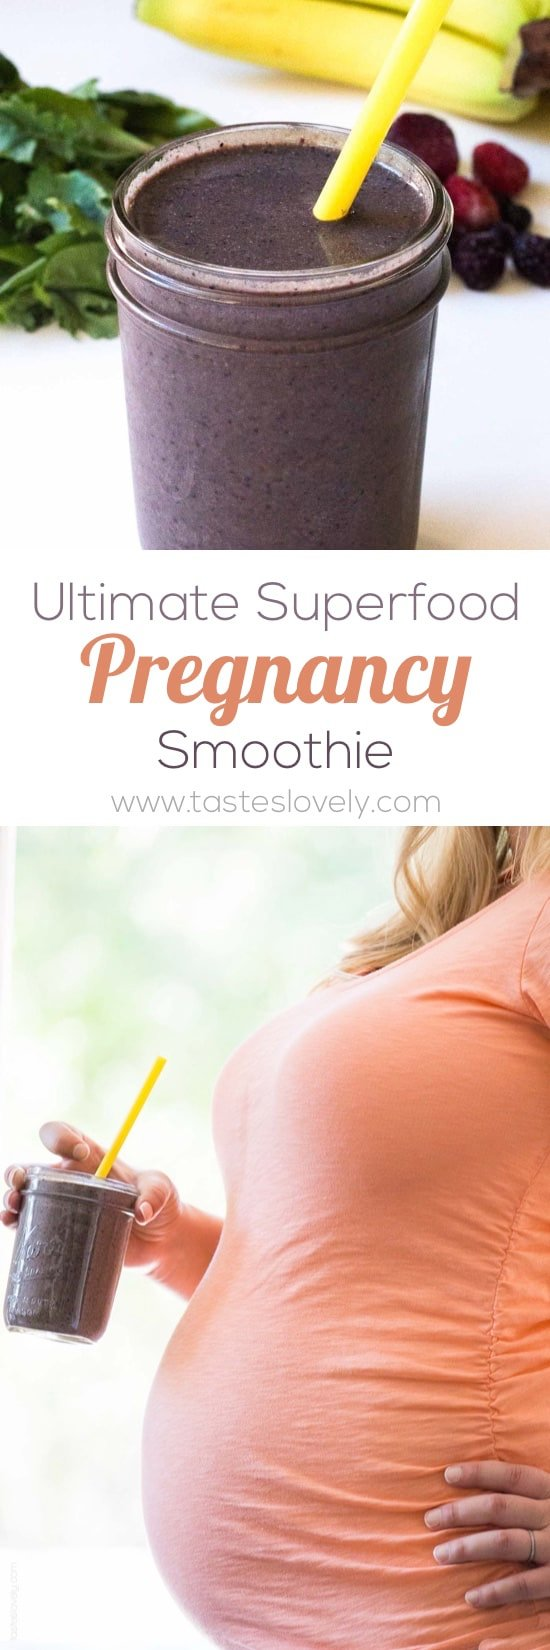 Ultimate Superfood Pregnancy Smoothie - a superfood pregnancy smoothie with everything you and your growing baby need